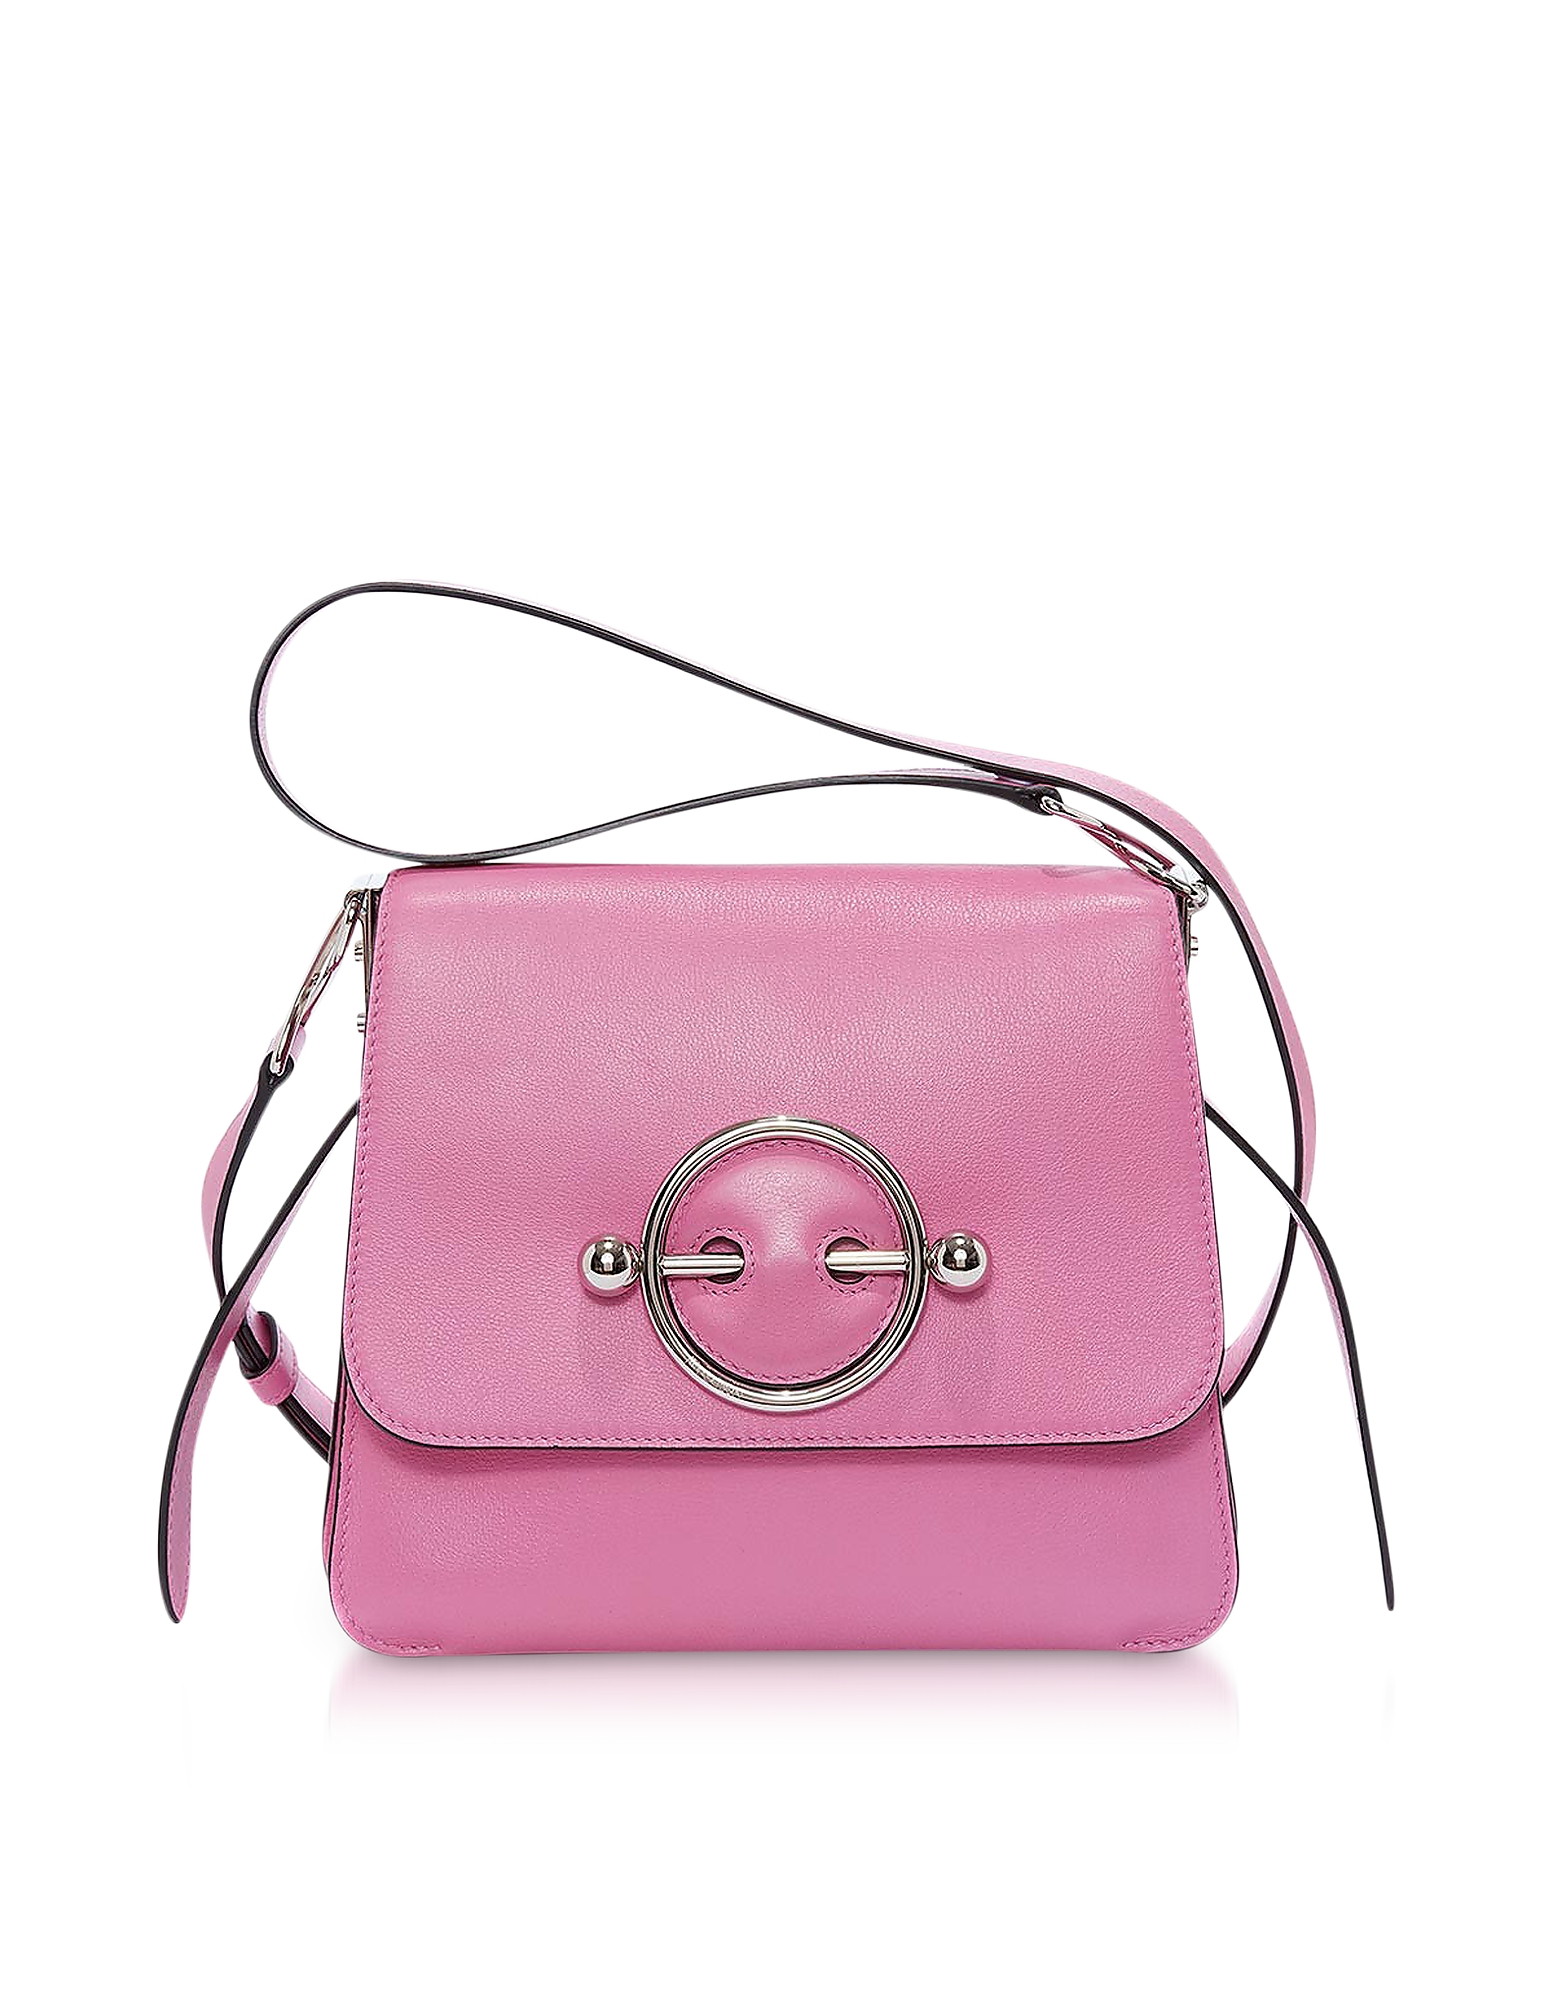 Image of JW Anderson Designer Handbags, Camellia Smooth Calf Leather Disc Bag